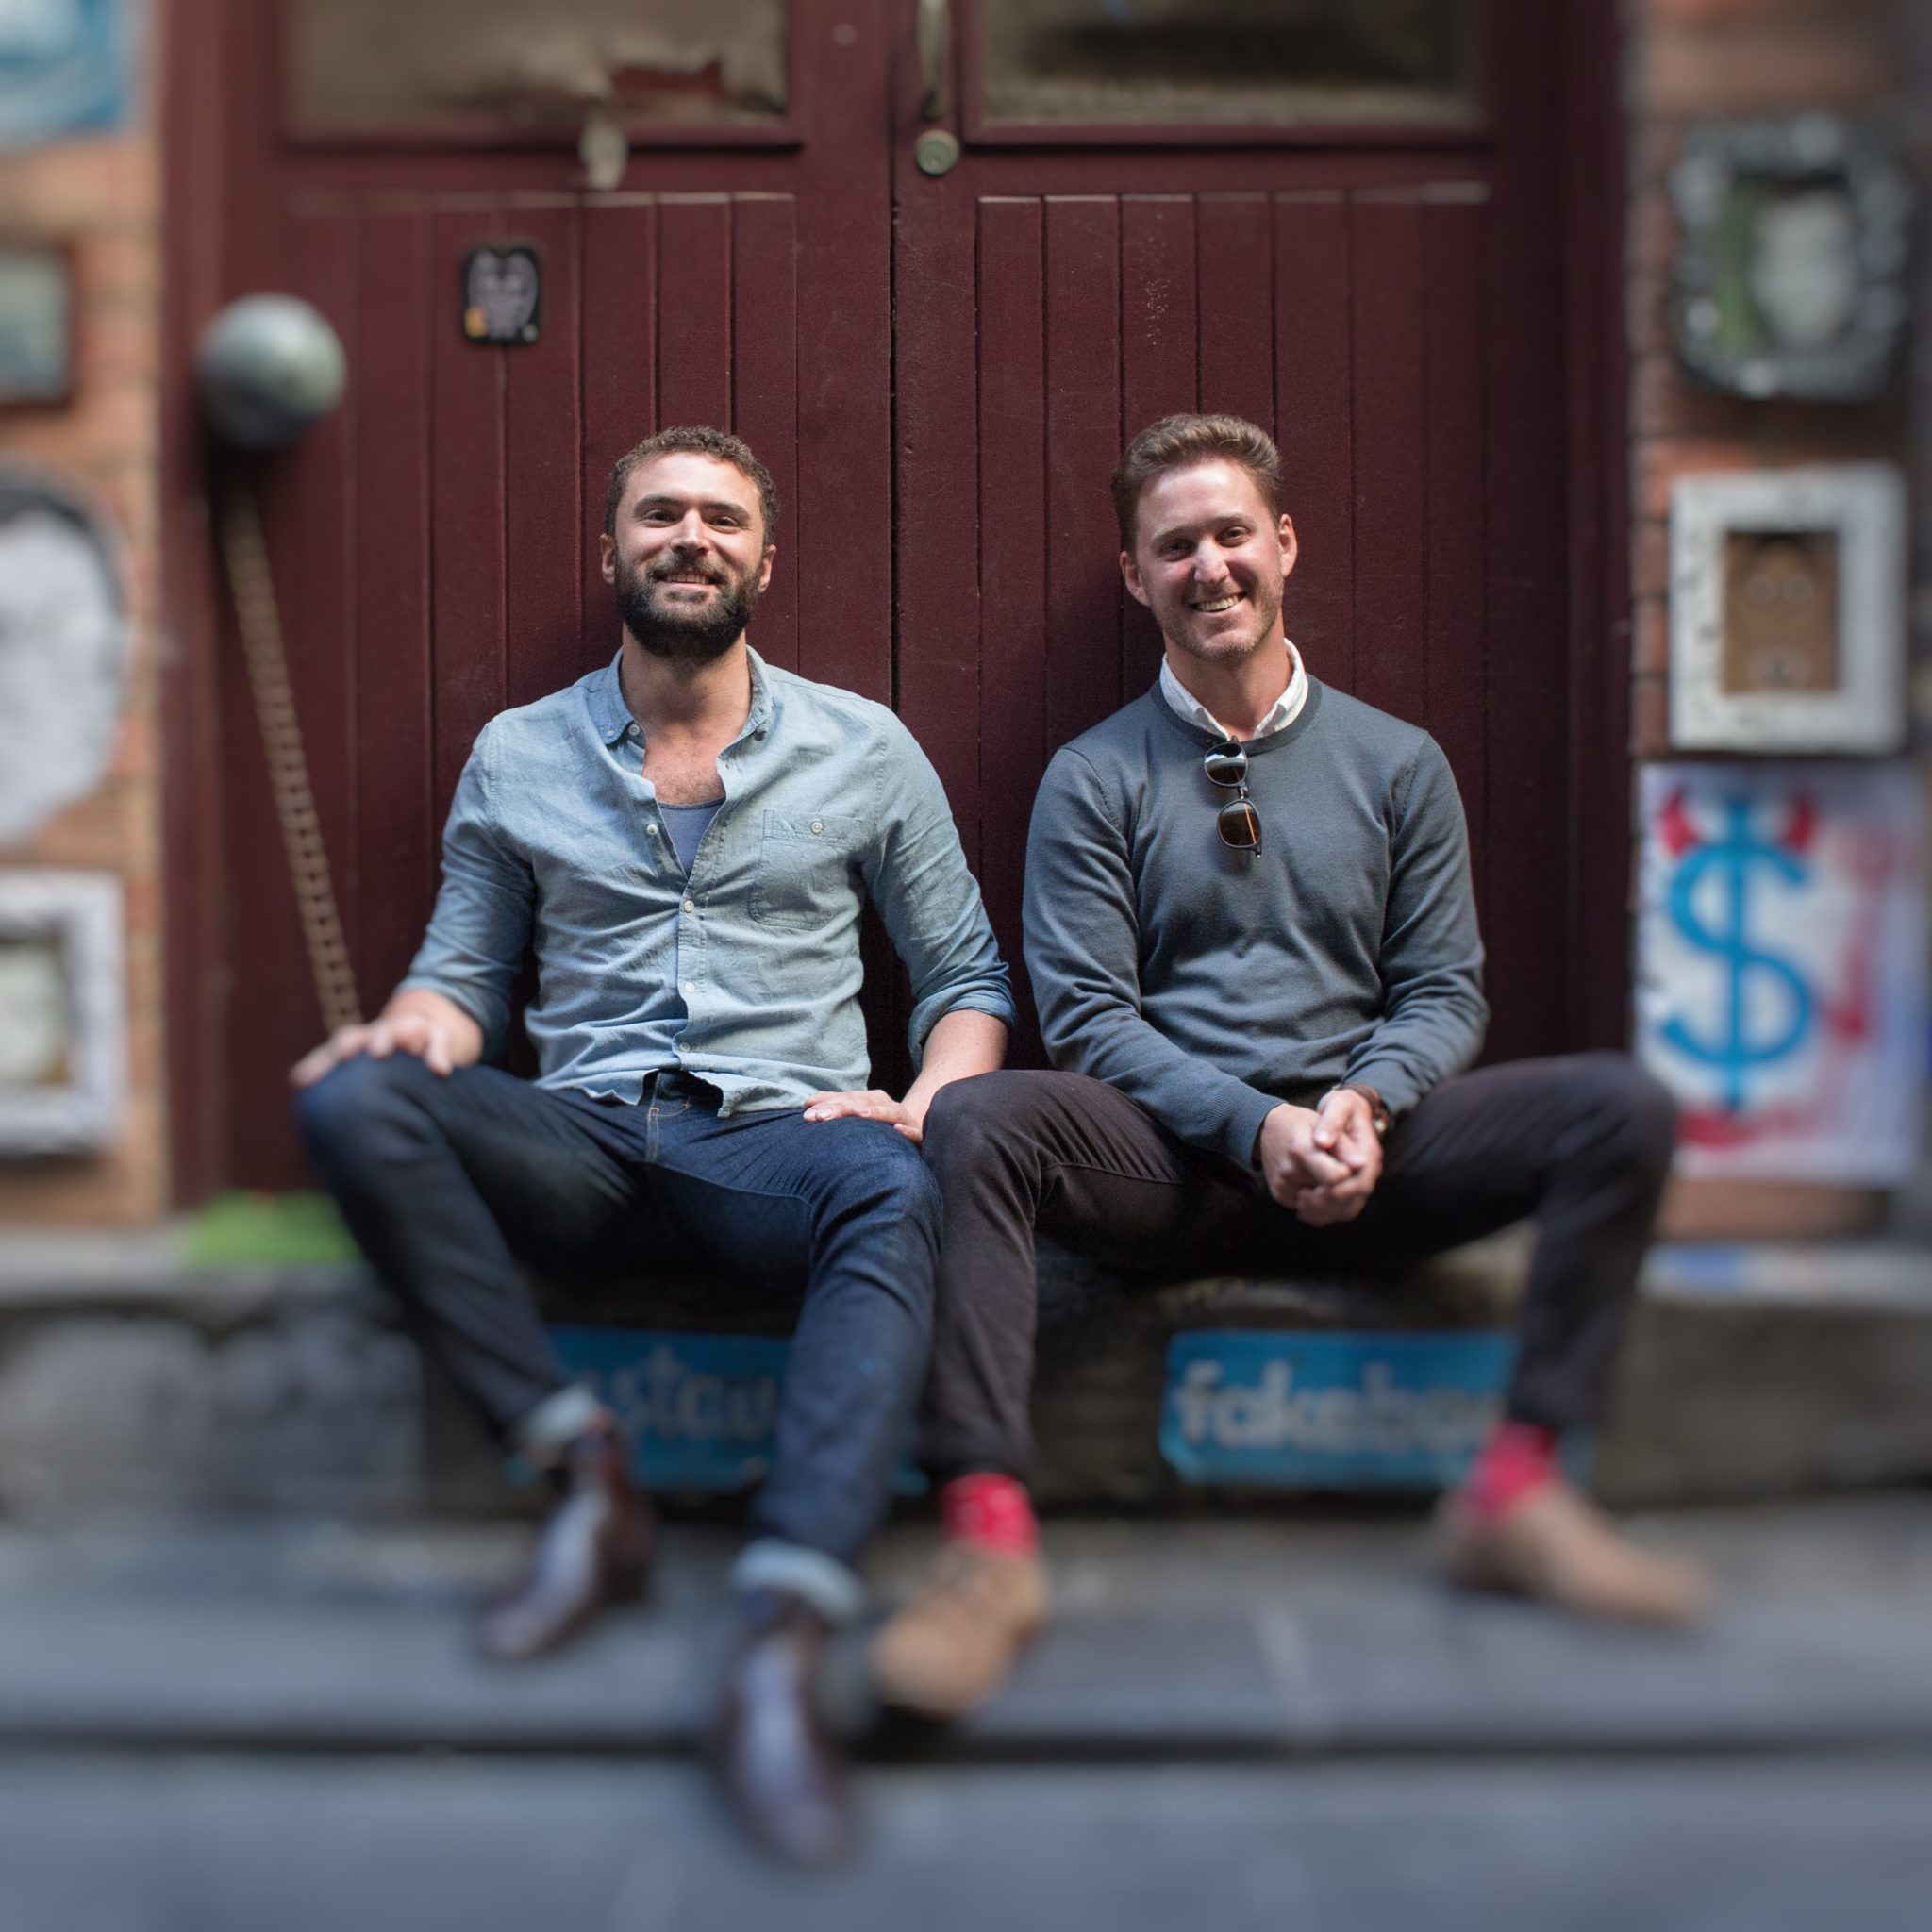 Localing are a pair of tour guides who do private tailored tours of Melbourne and Regional Victoria